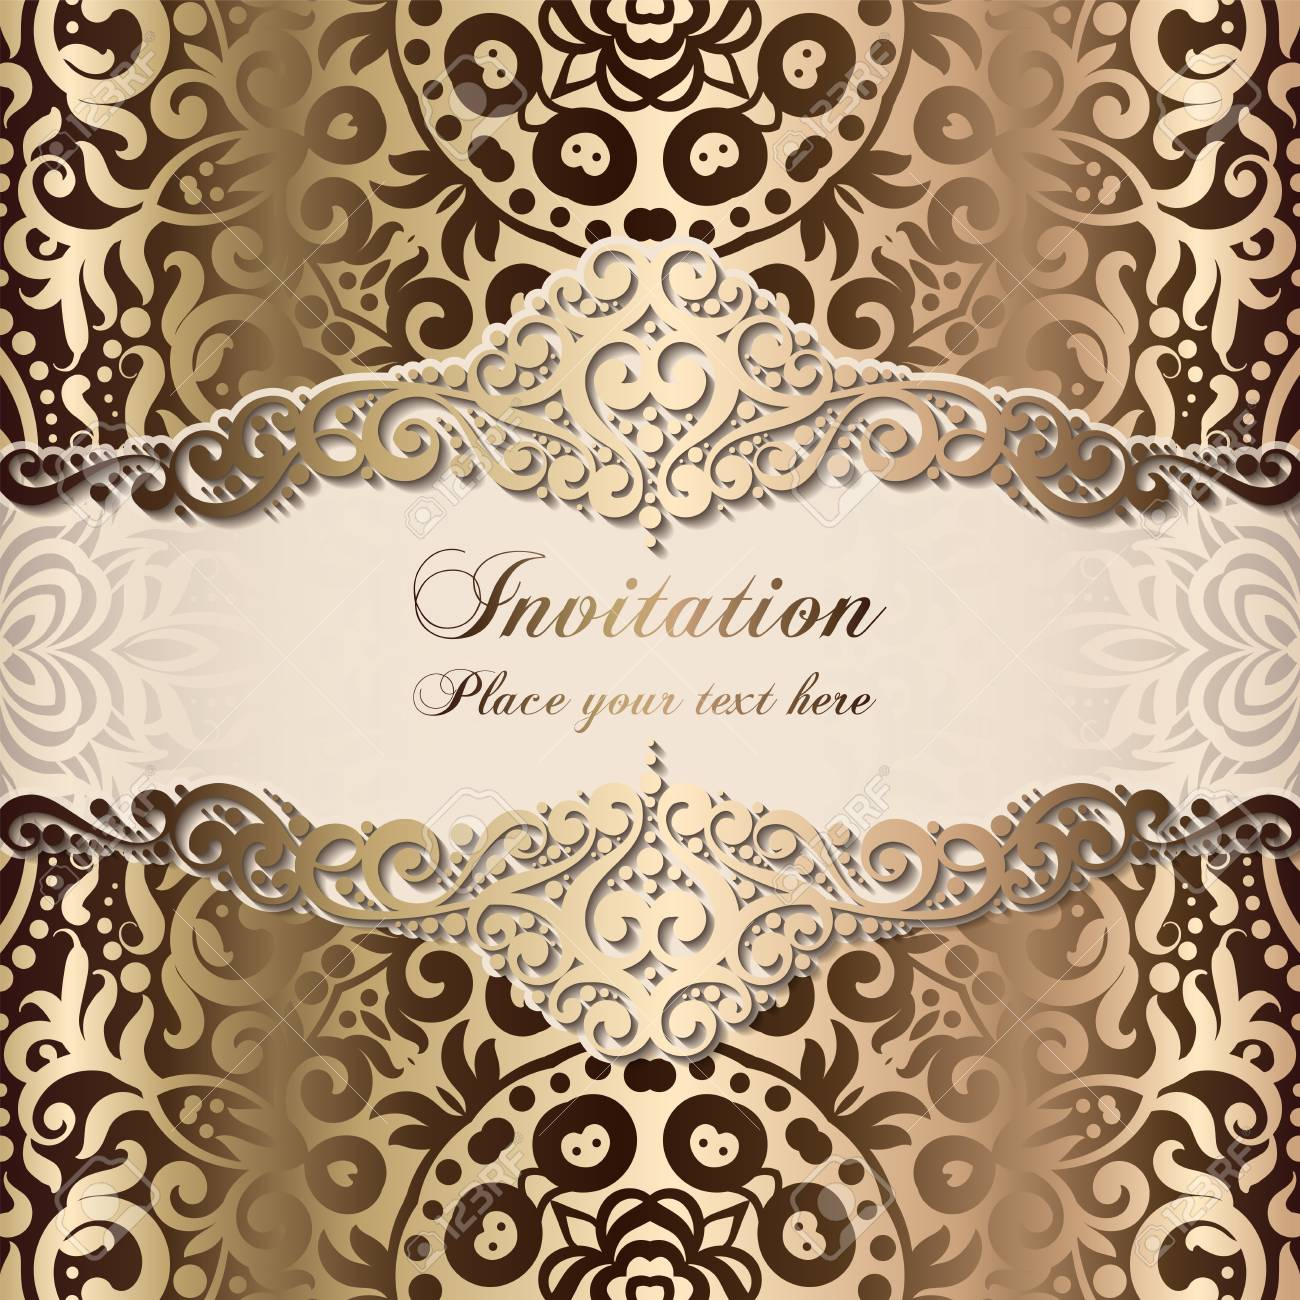 Gold Wedding Invitation Card Template Design With Damask Pattern On